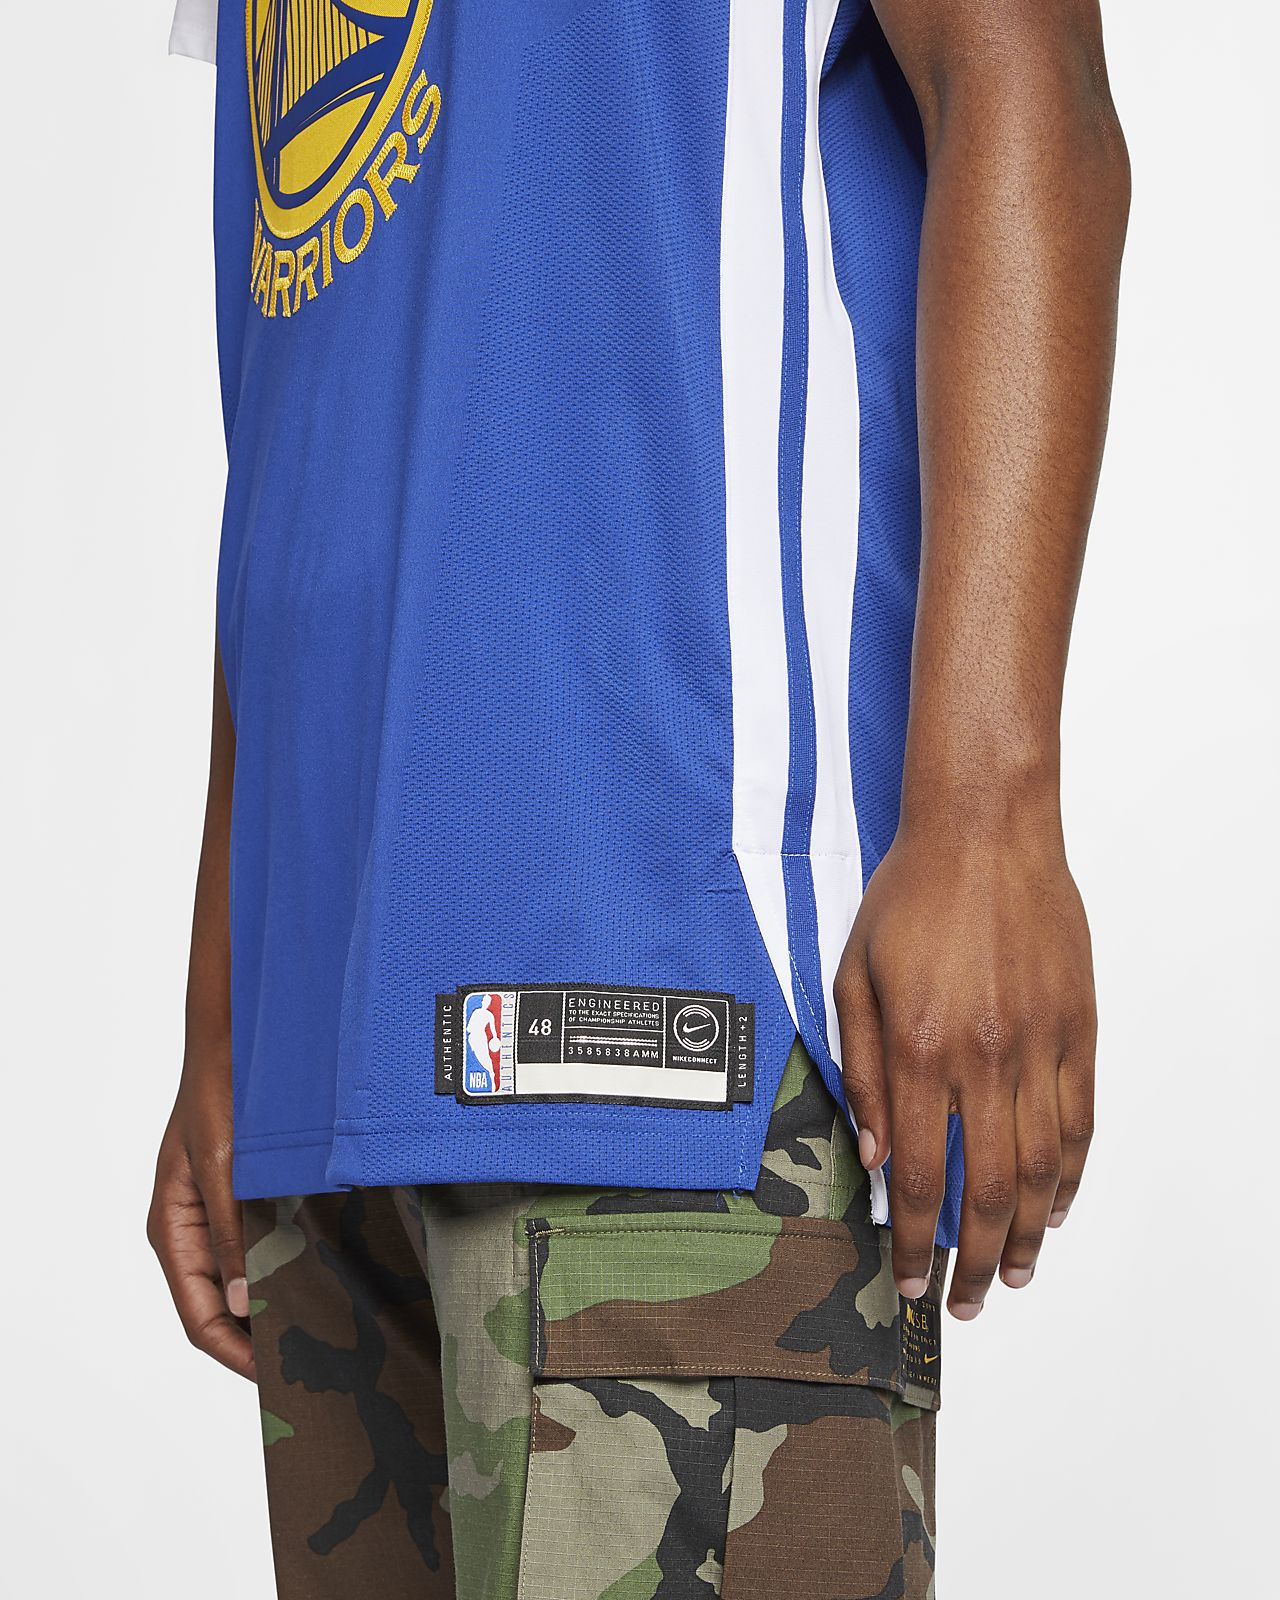 9e4432feb89 ... Kevin Durant Icon Edition Authentic (Golden State Warriors) Men s Nike  NBA Connected Jersey